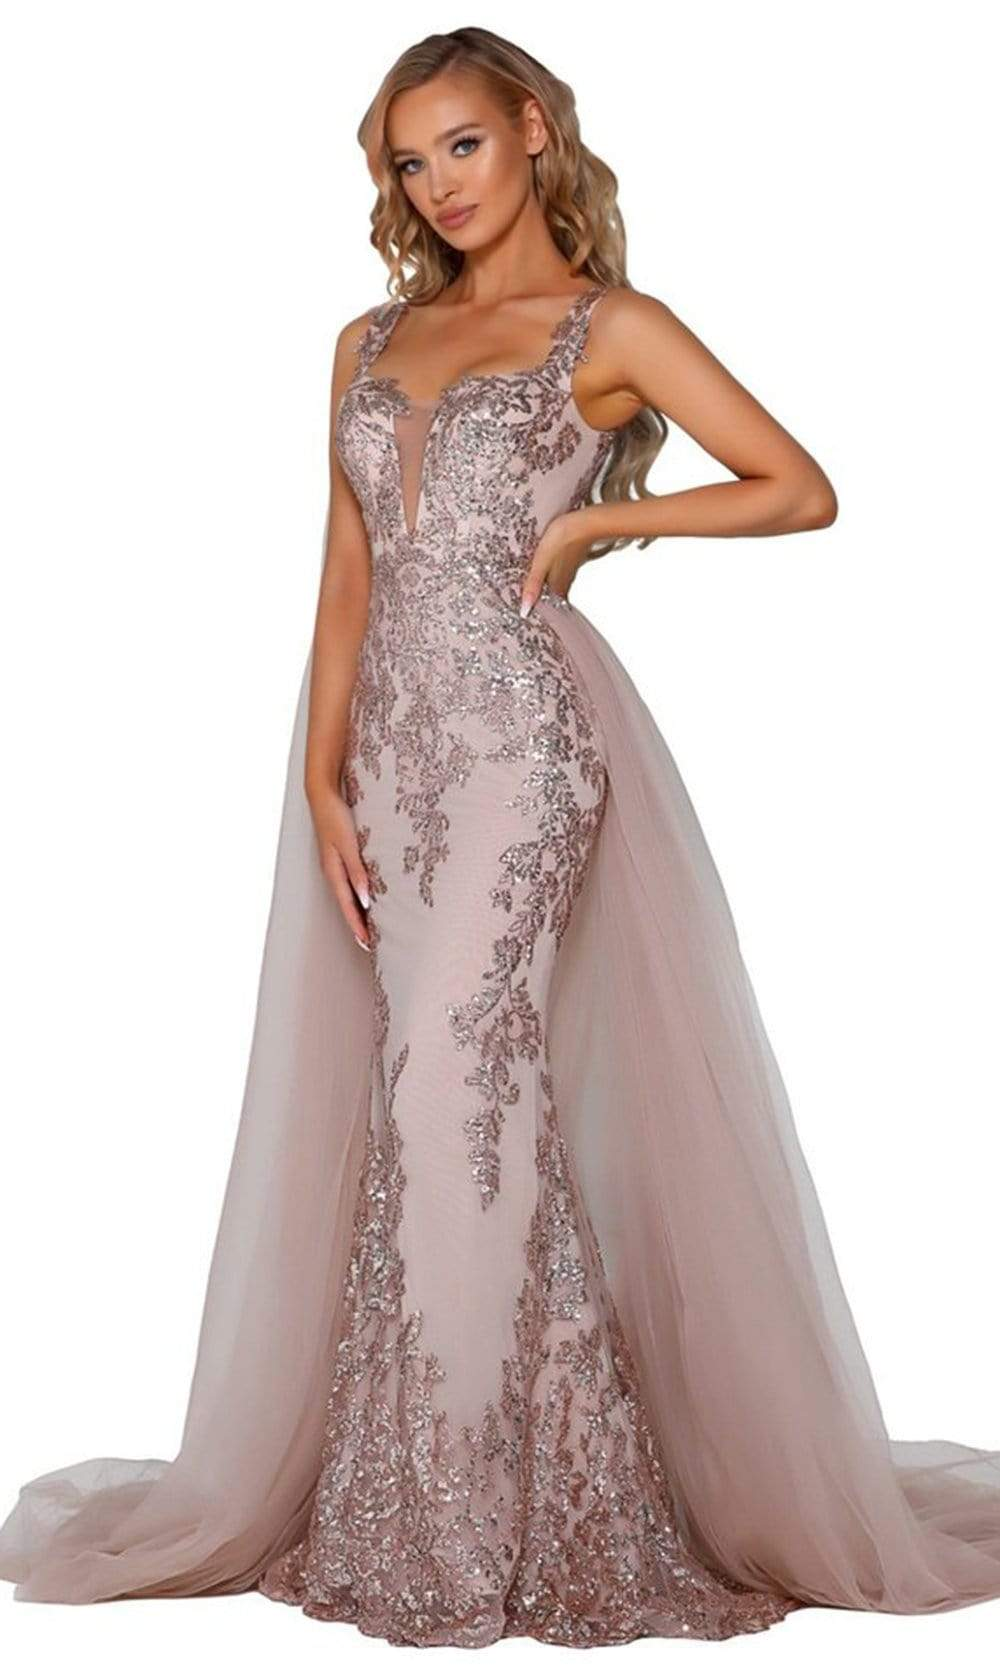 Portia and Scarlett - PS5011 Sequin Embroidery Drape Cape Evening Gown Prom Dresses 0 / Rose Gold